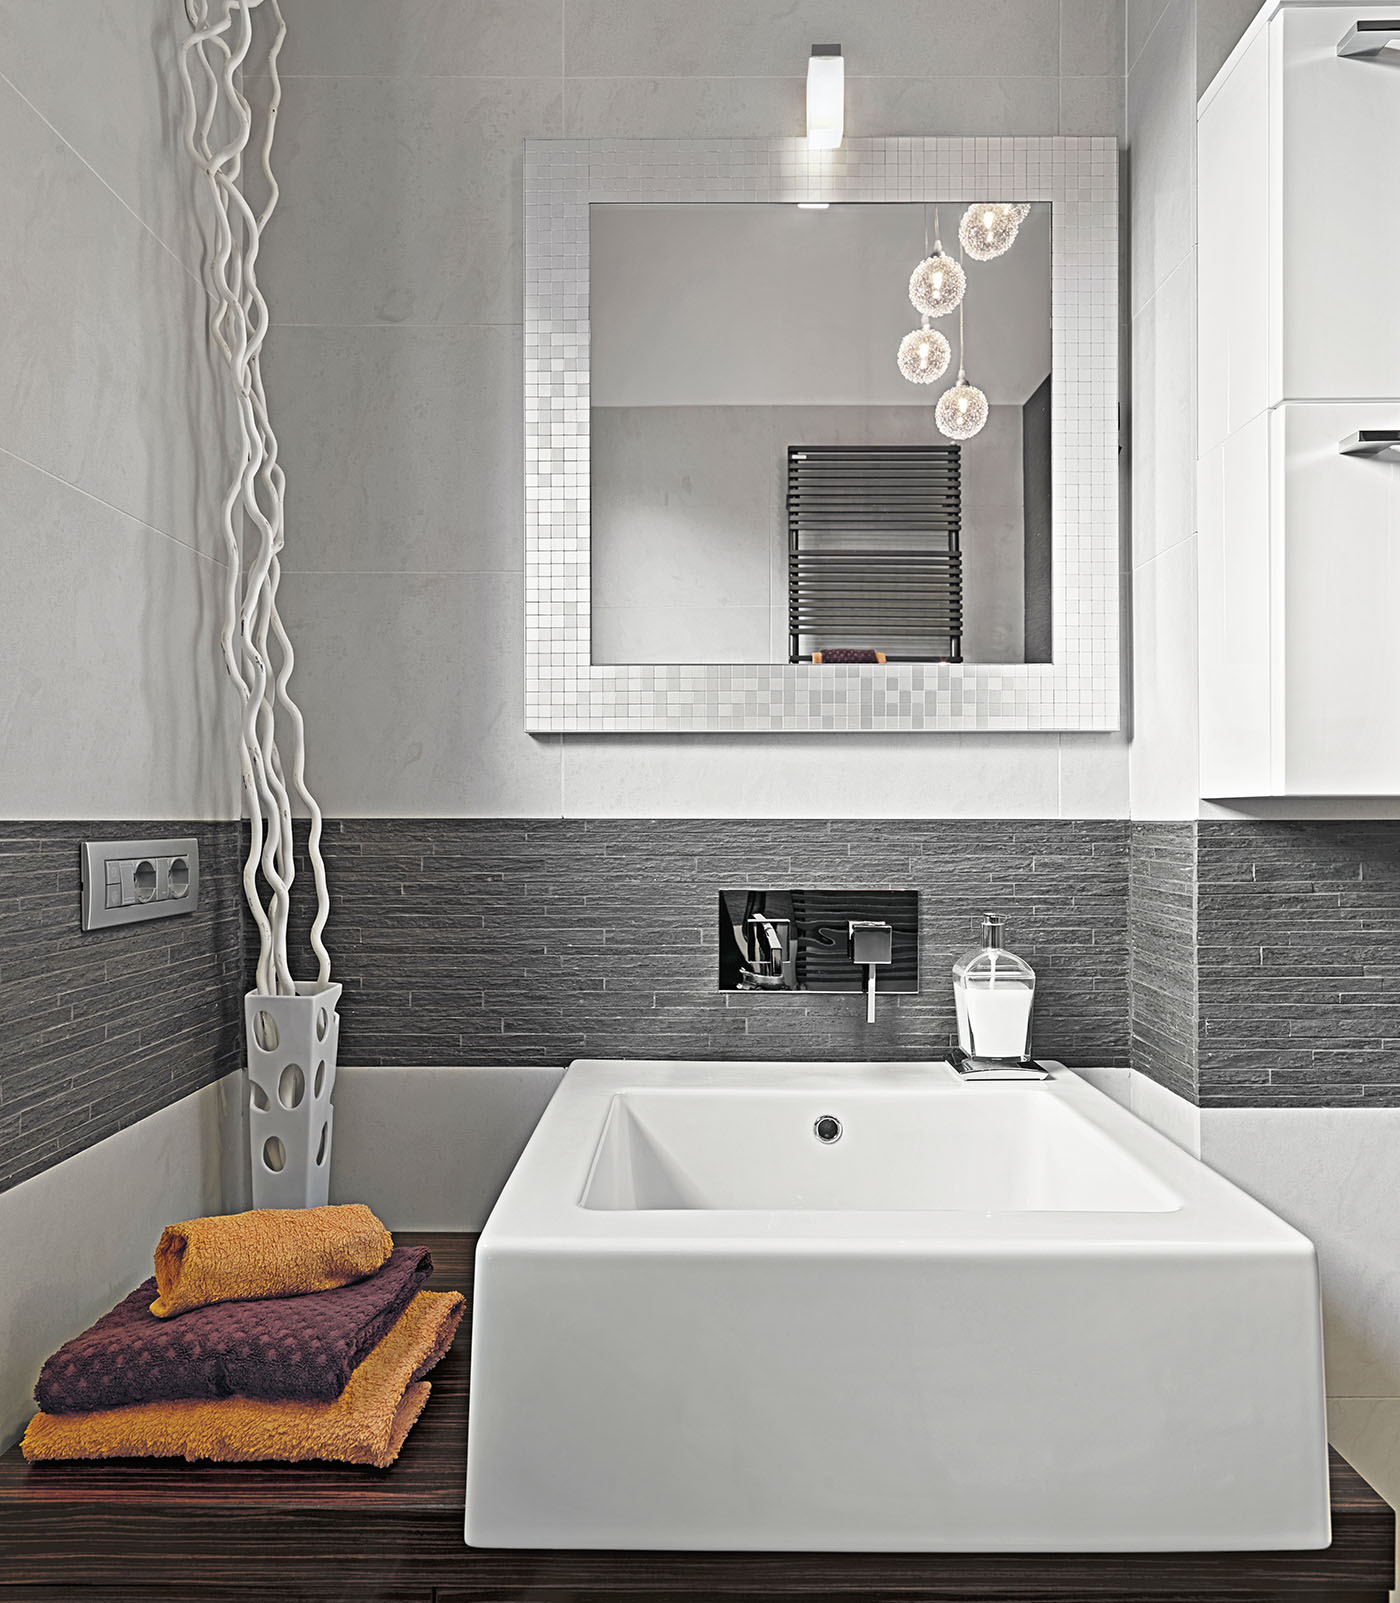 modern bathrom  interior in the foreground the countertop washbasin